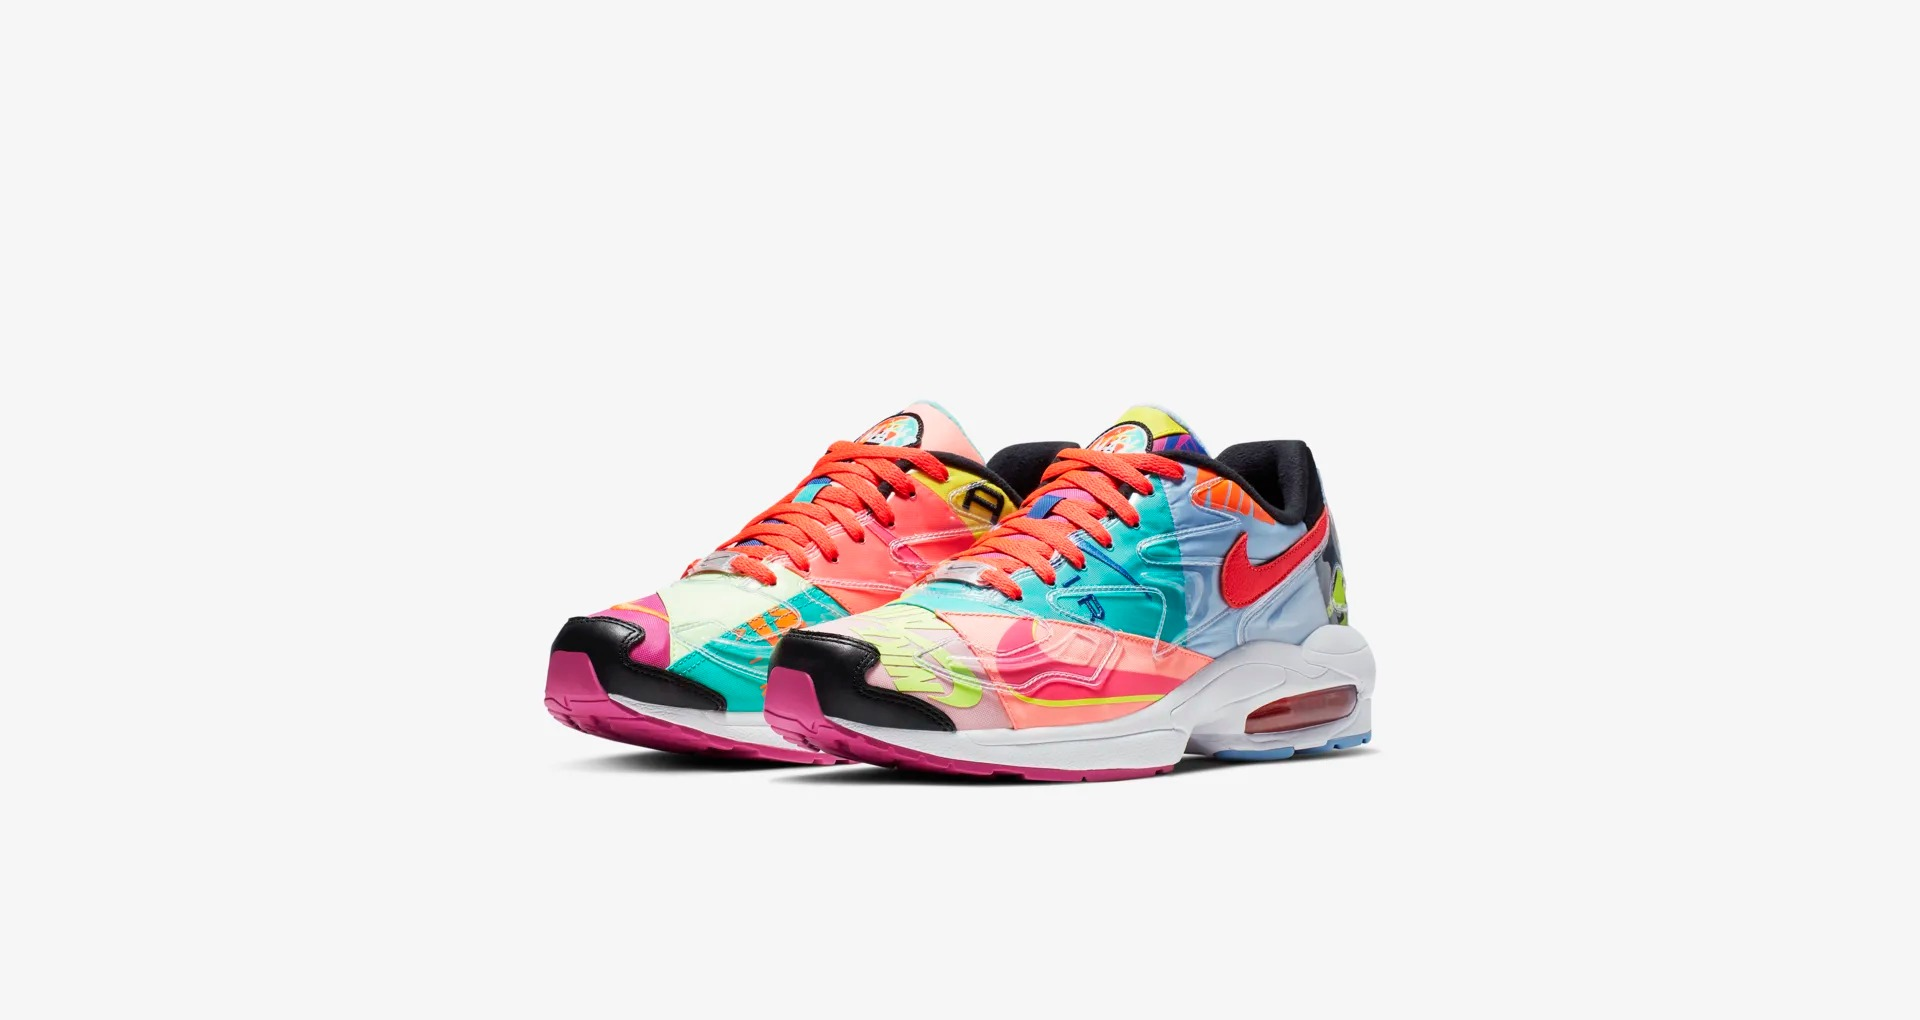 BV7406 001 Atmos x Nike Air Max2 Light 5